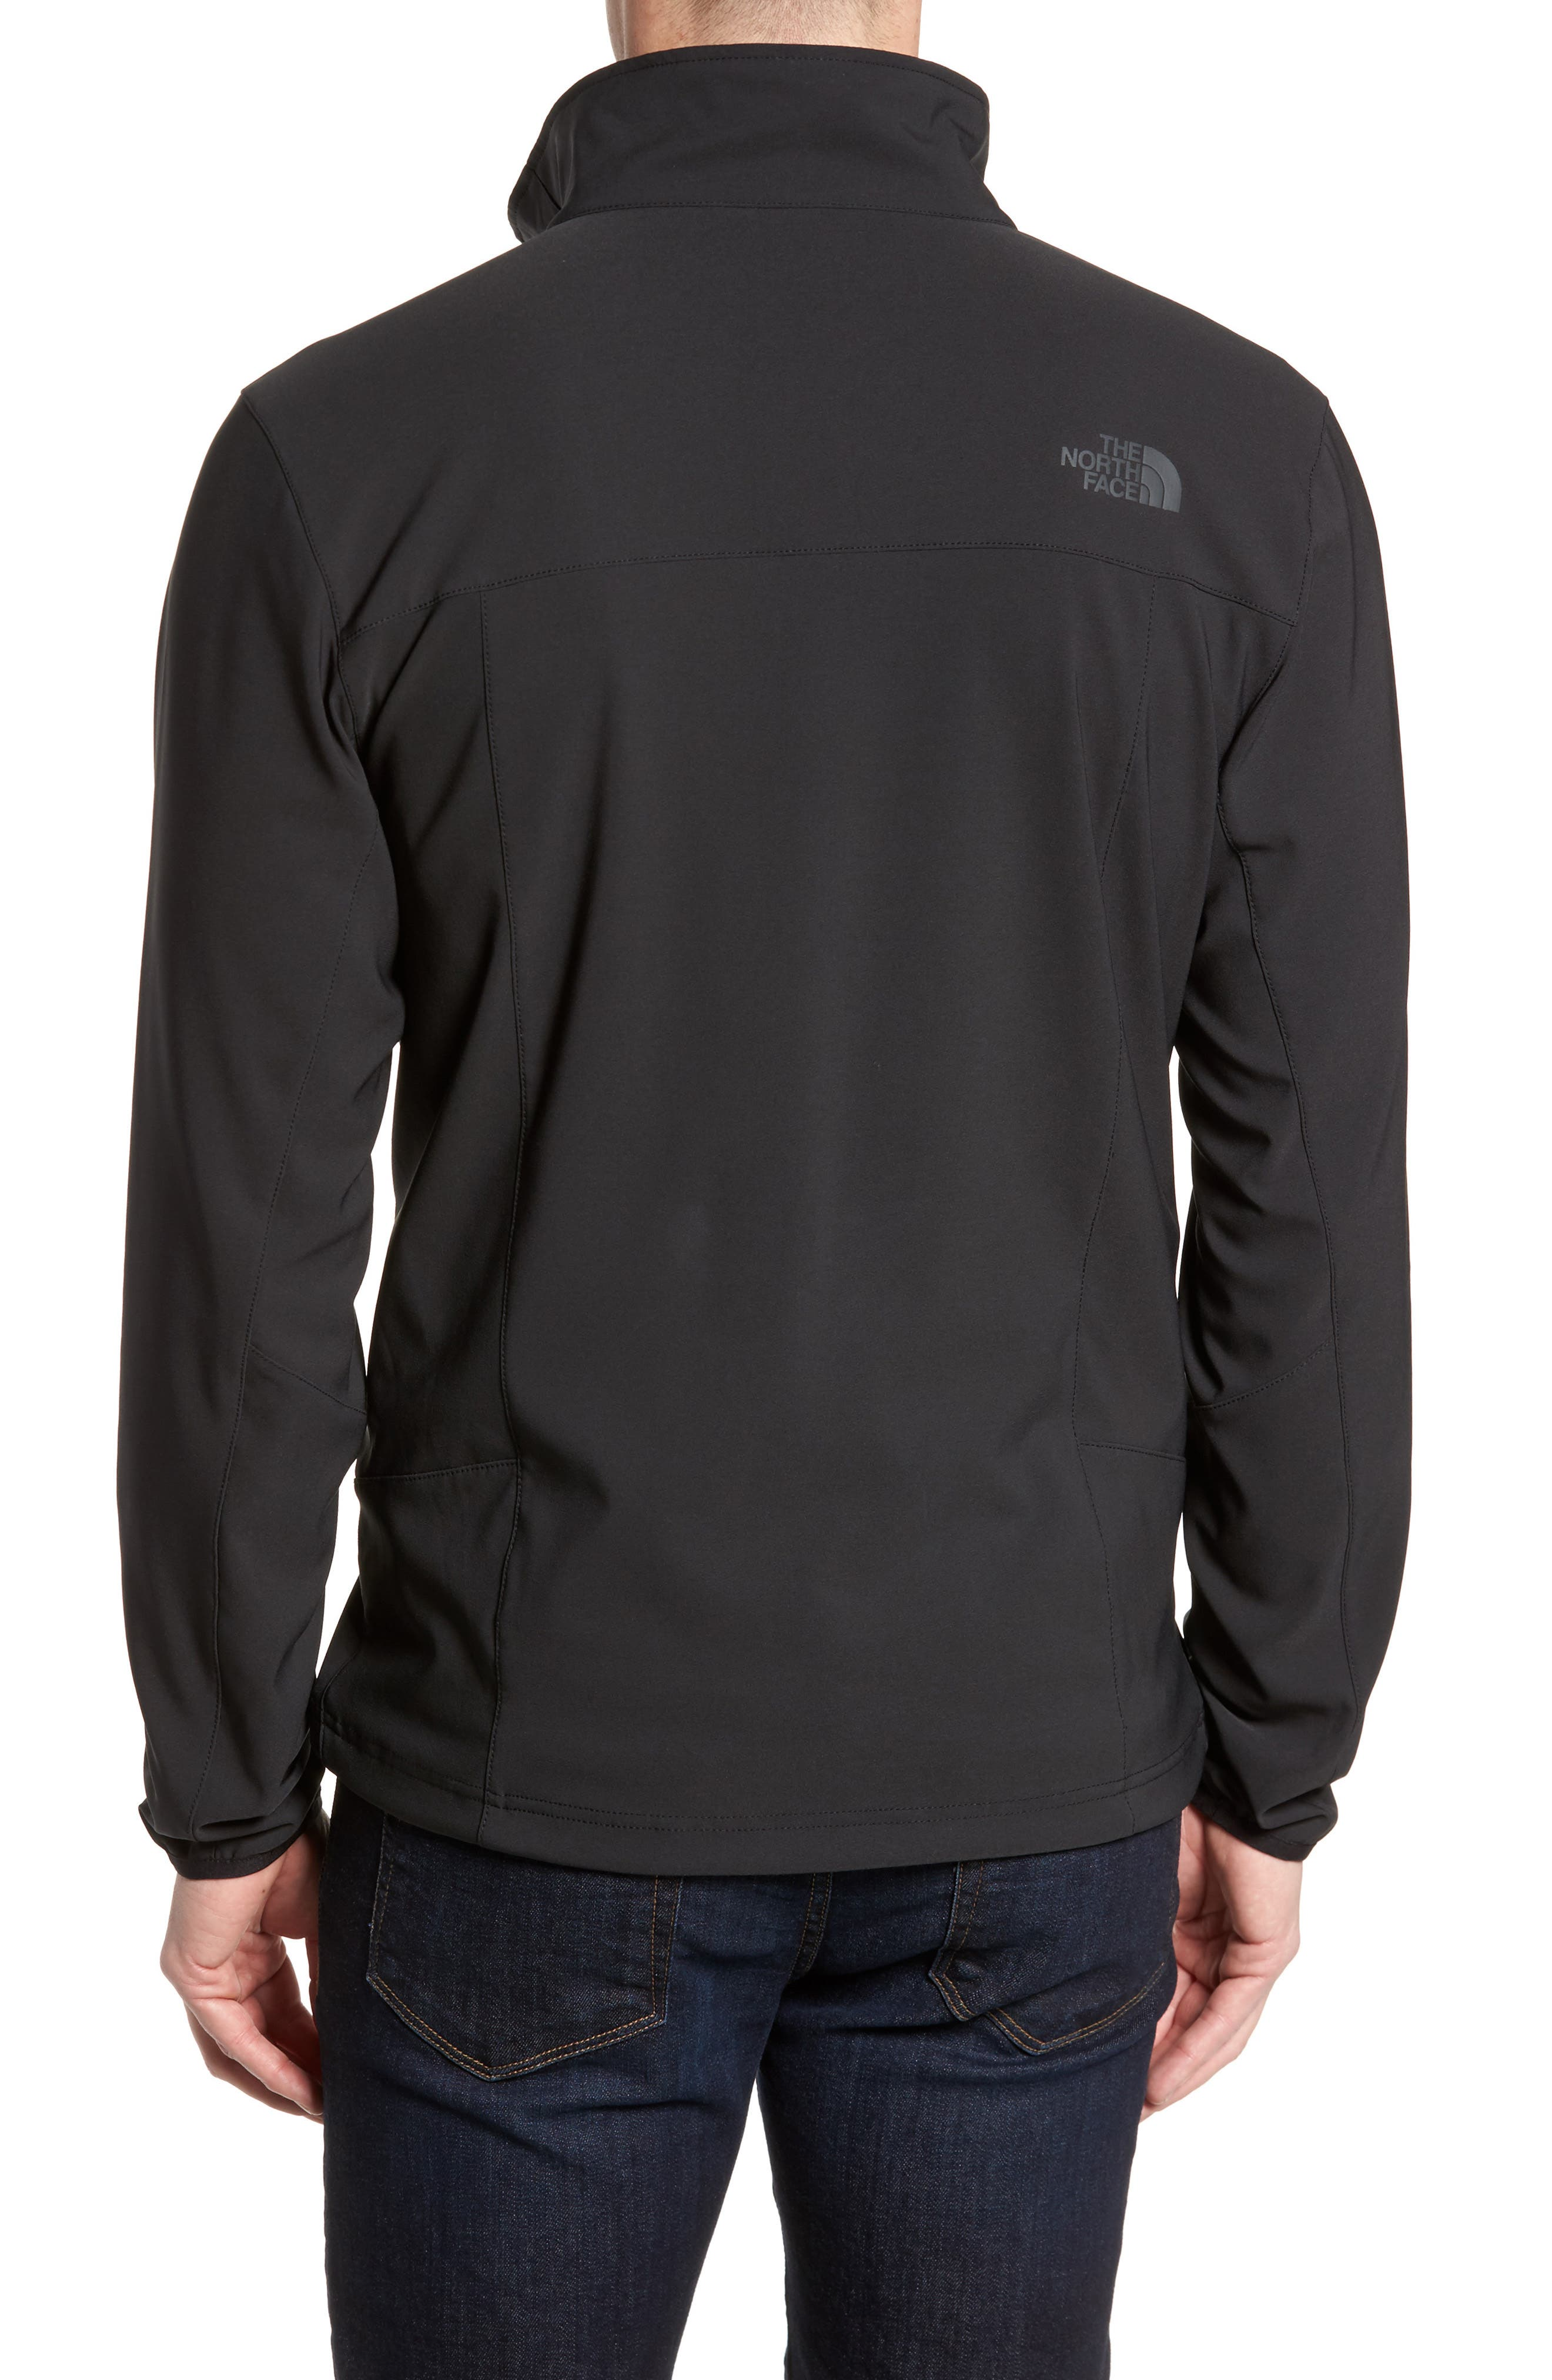 Apex Nimble Jacket,                             Alternate thumbnail 2, color,                             BLACK/ BLACK